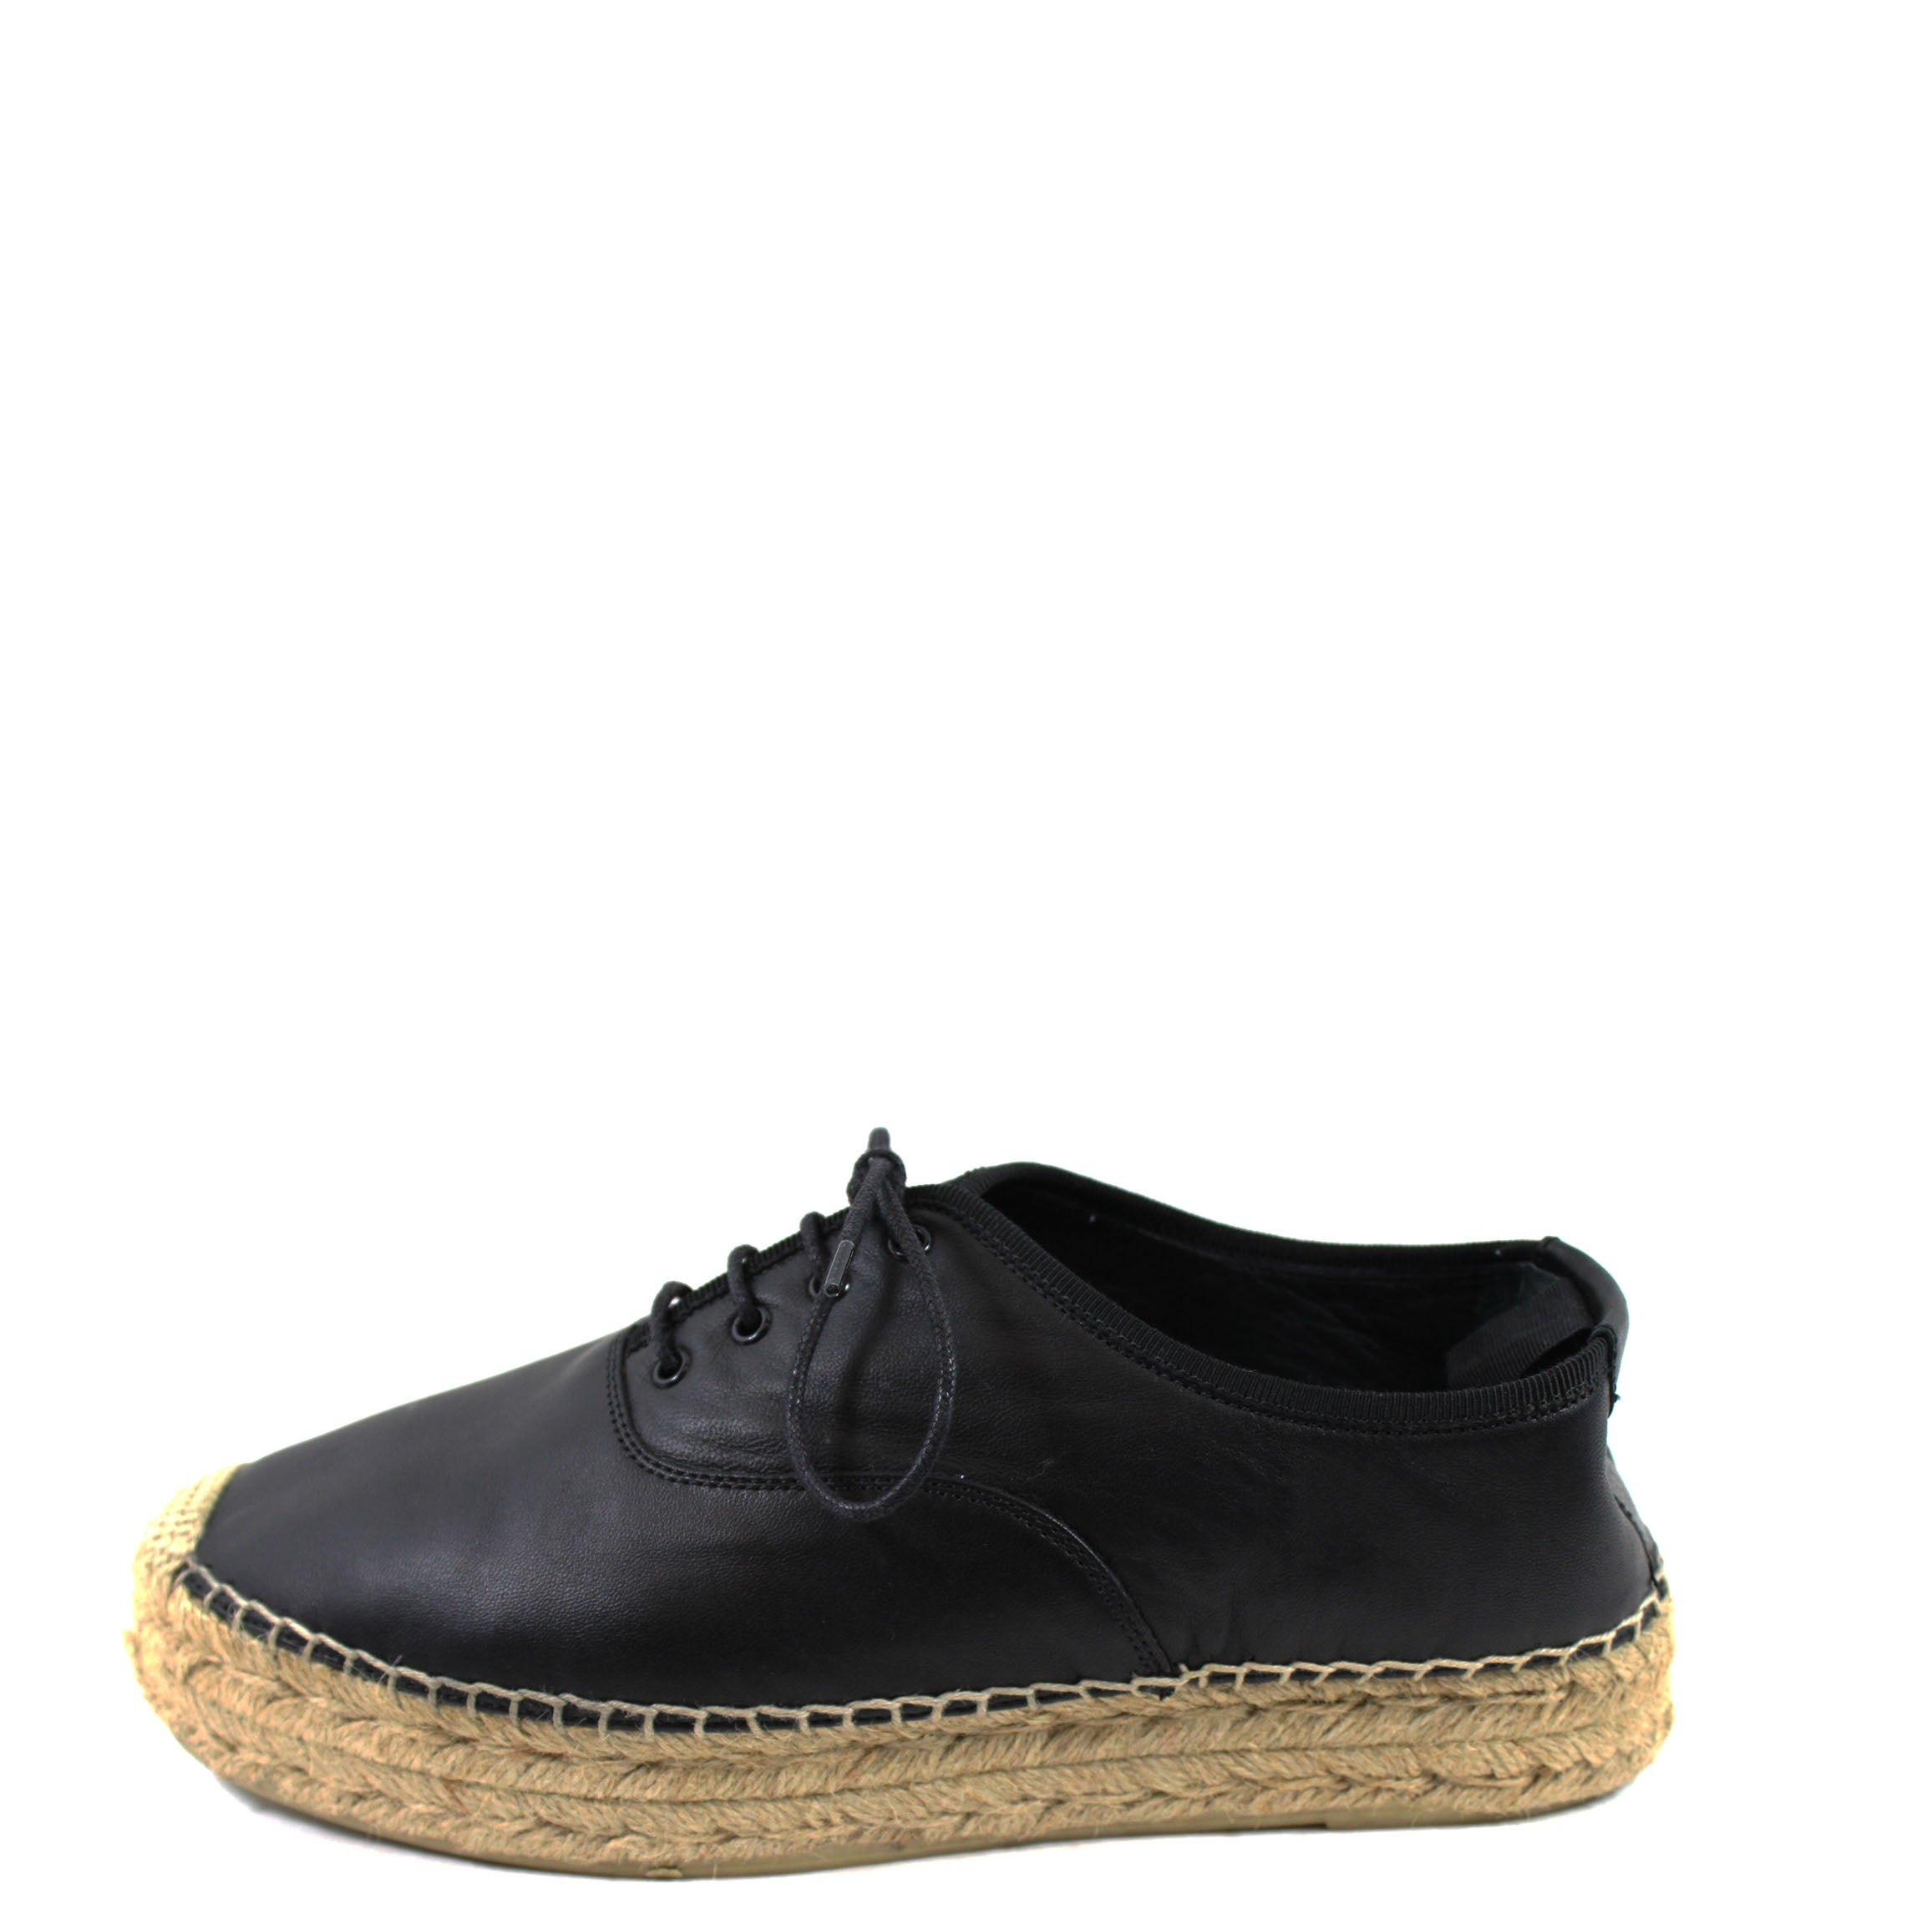 6e067324712 Saint Laurent Black Leather Lace-up Espadrilles (Size 39) – Encore  Resale.com